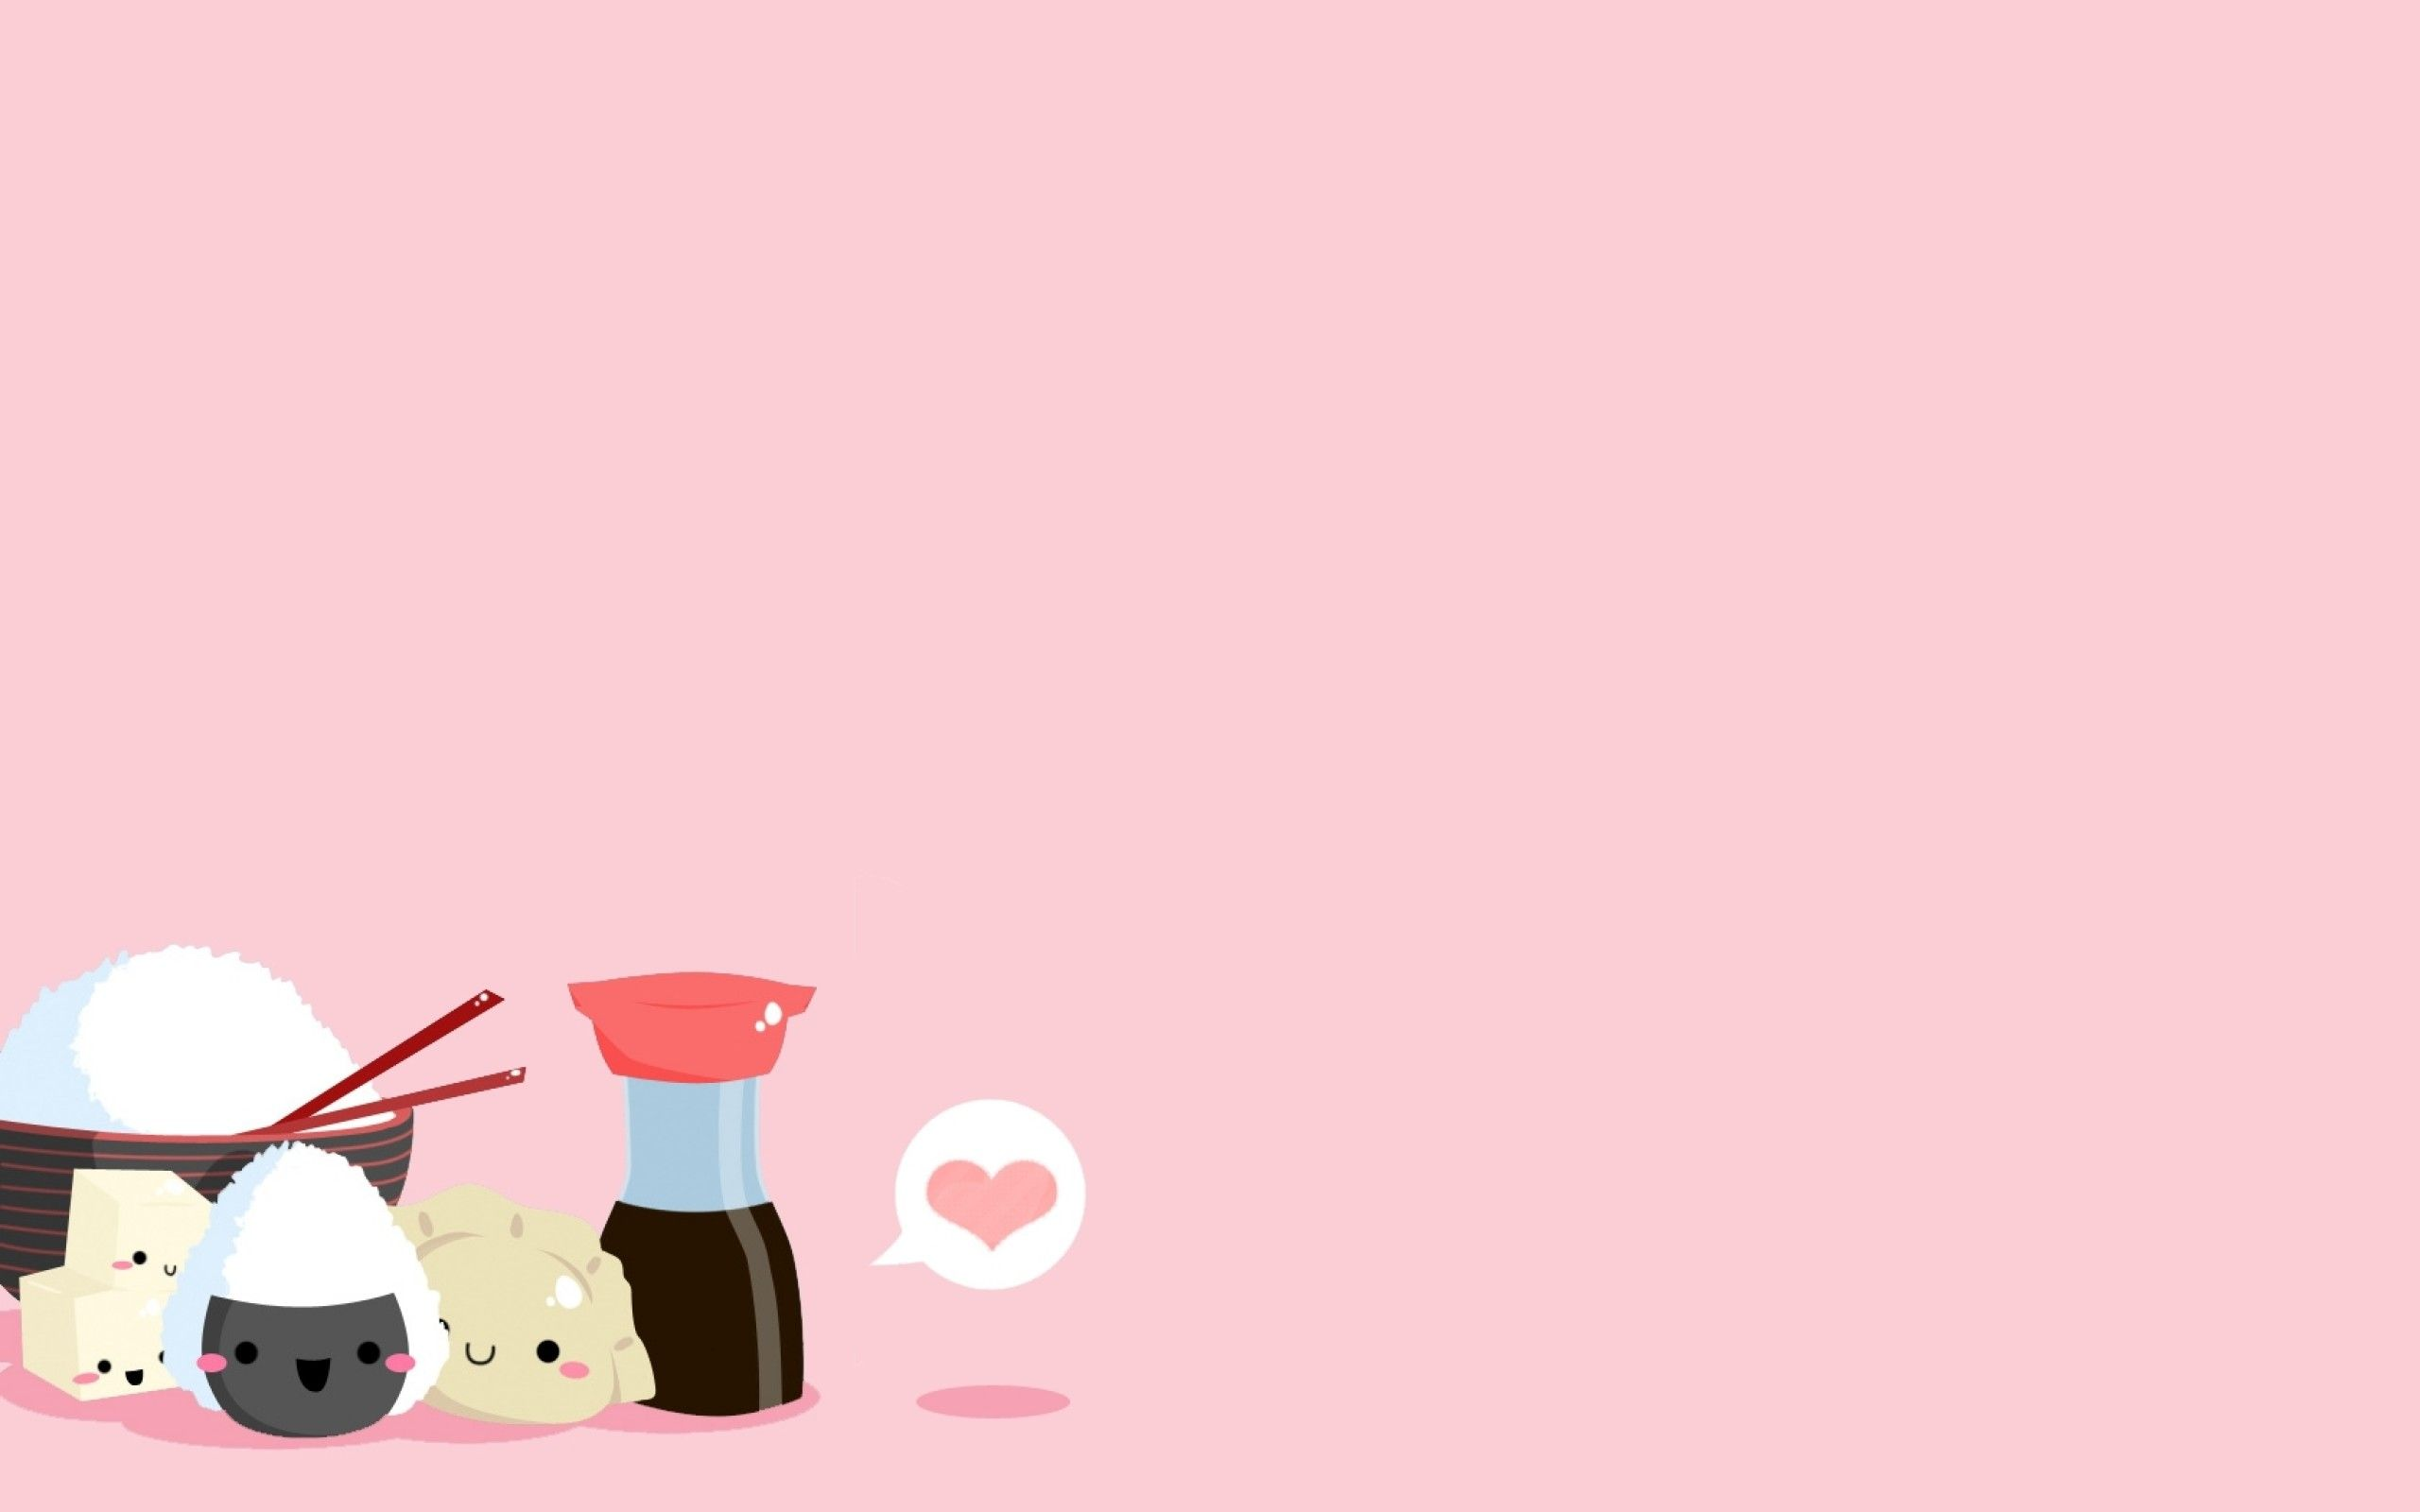 2560x1600 Download Wallpaper Cute desktop wallpaper